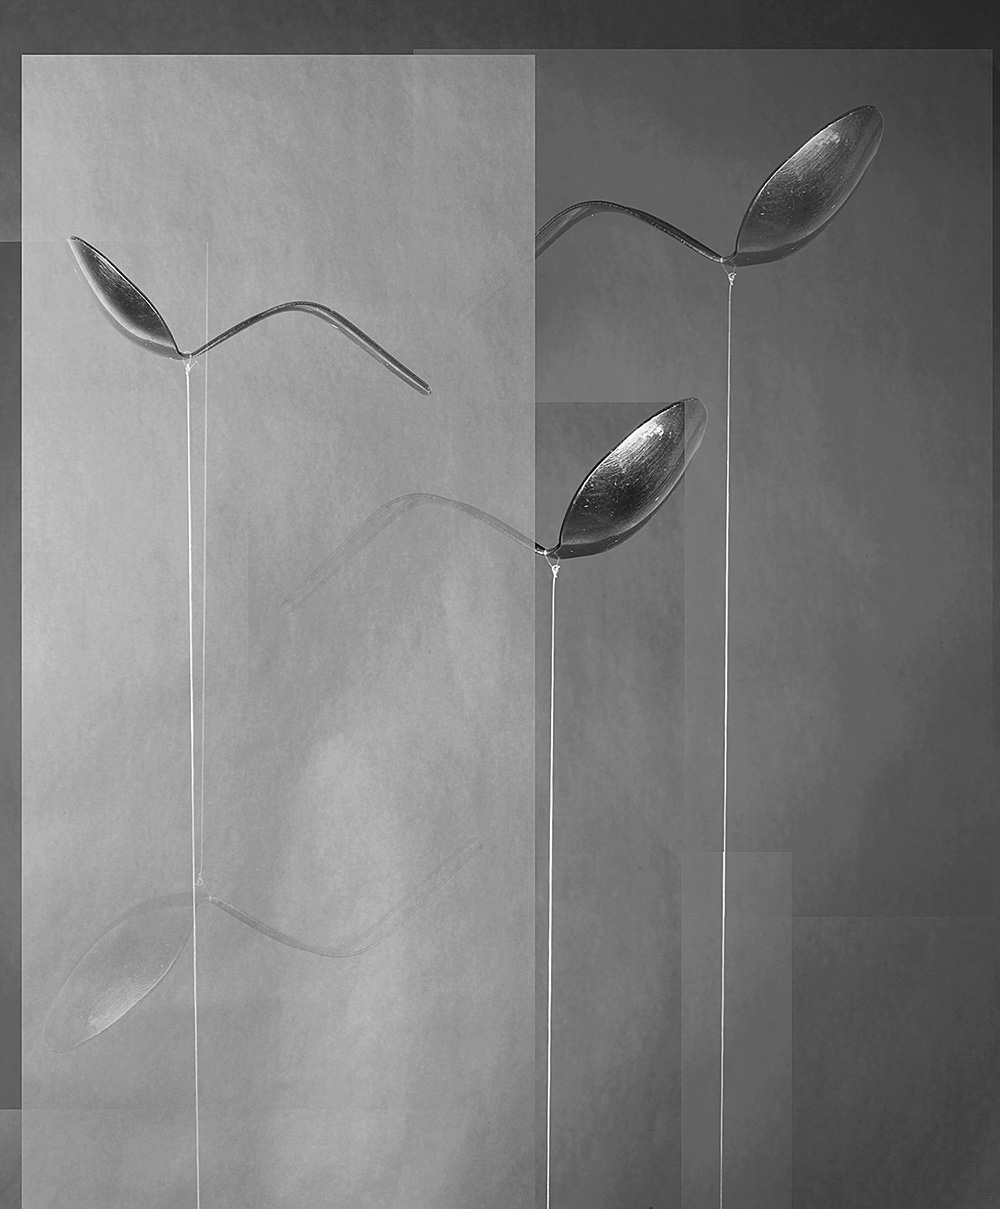 Spoons, from the series 'Other Ways of Knowing', 2016 © Alexandra Lethbridge